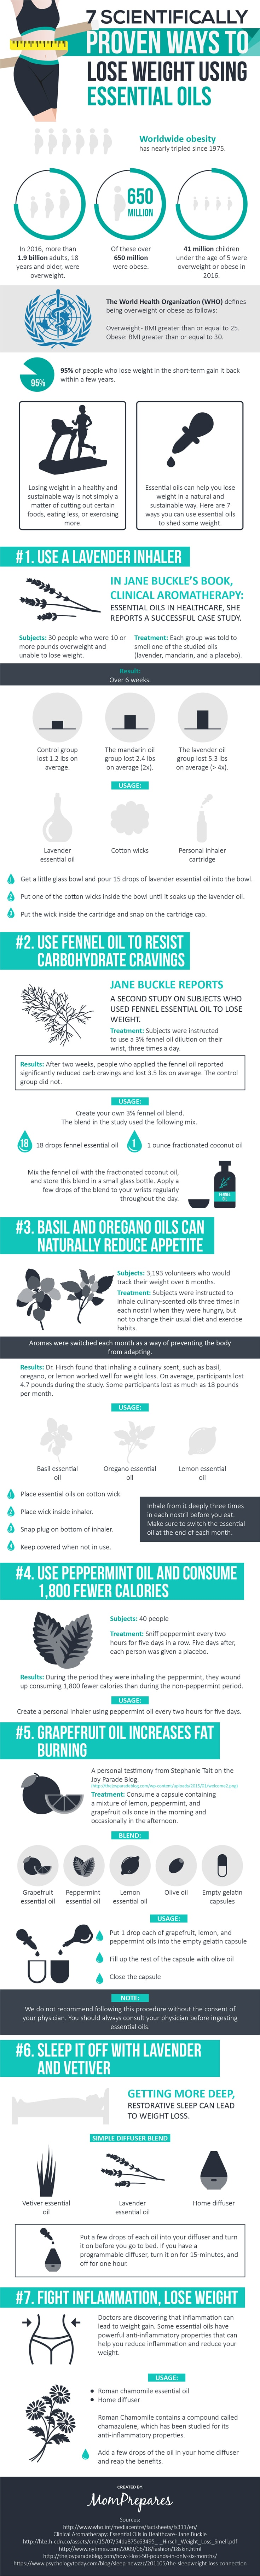 8 Amazing Ways To Use Essential Oils For Weight Loss With Proof